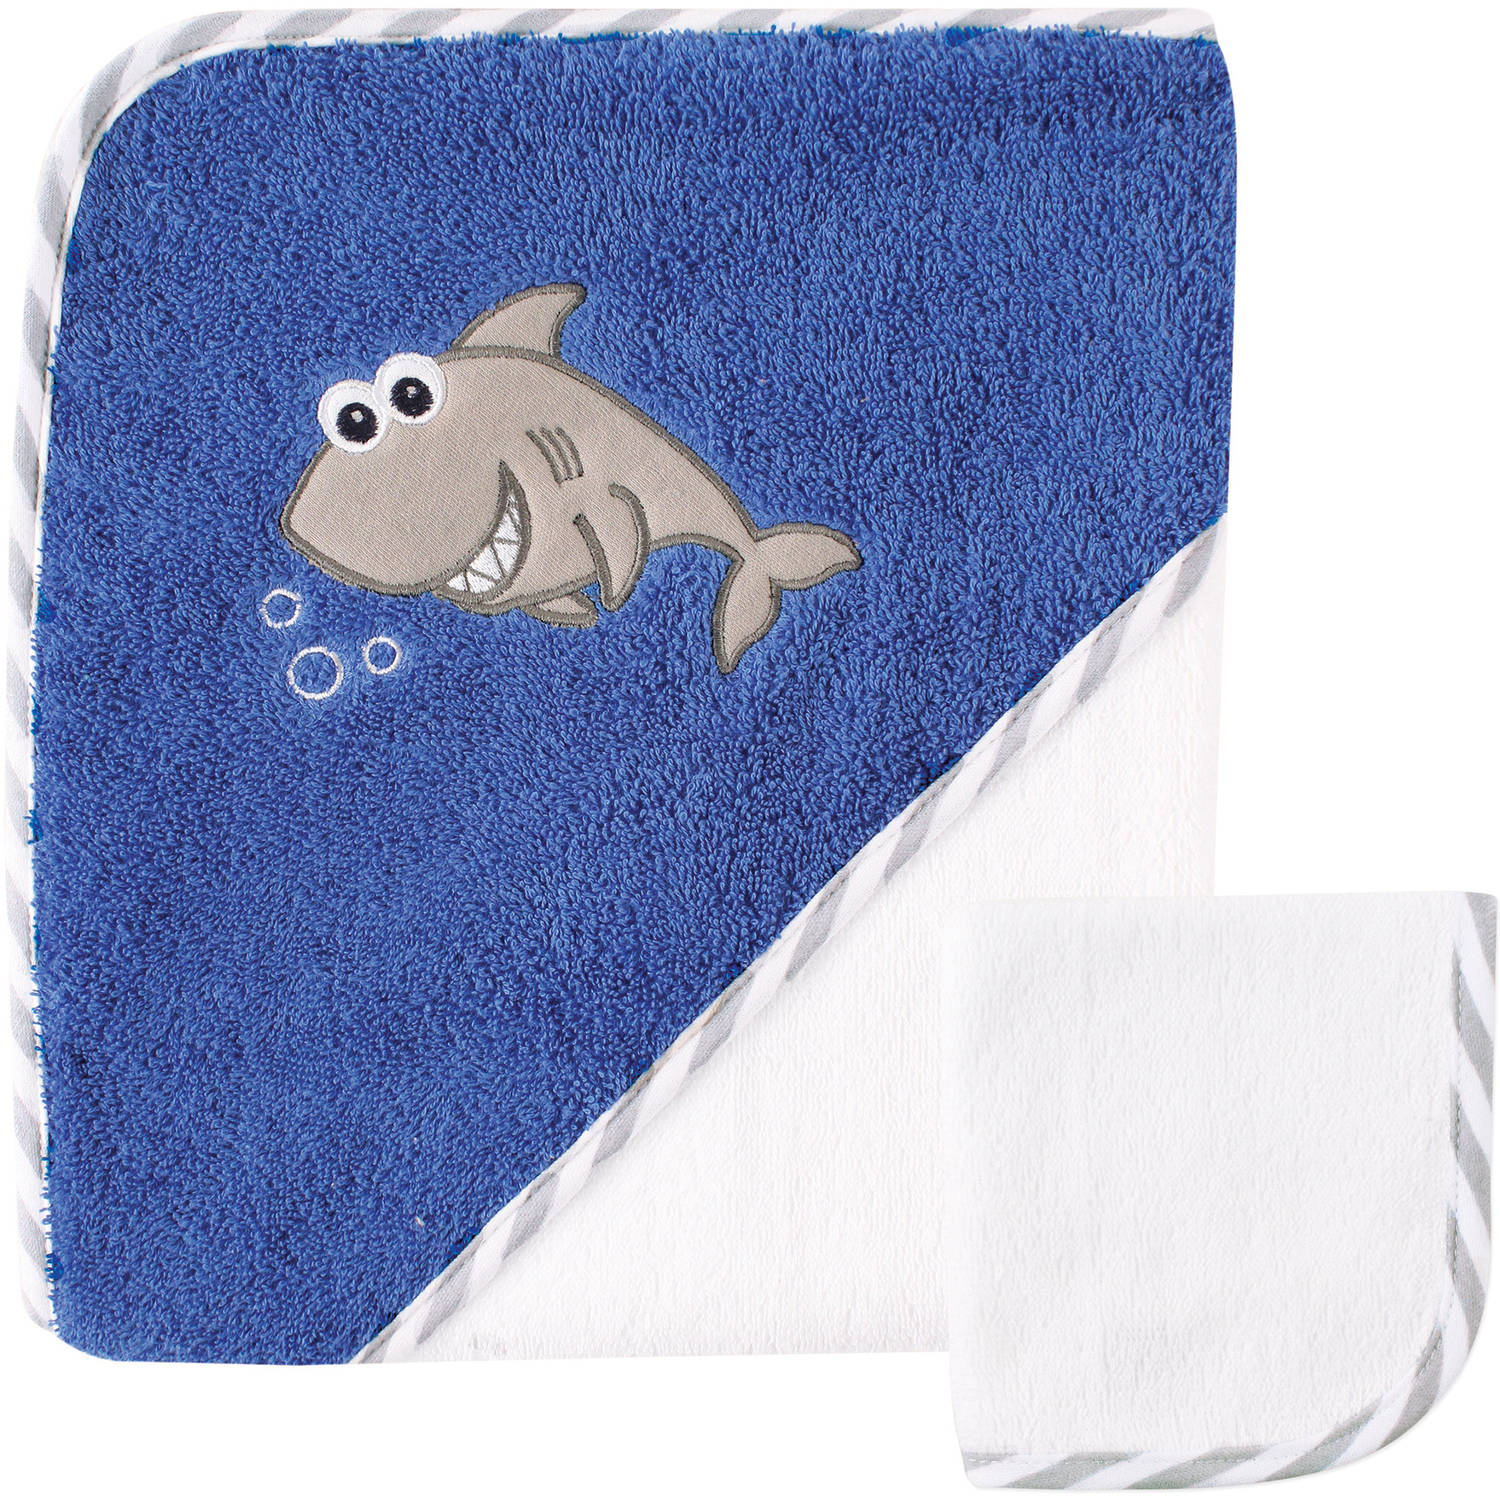 Luvable Friends Baby Woven Hooded Towel with Washcloth, Shark